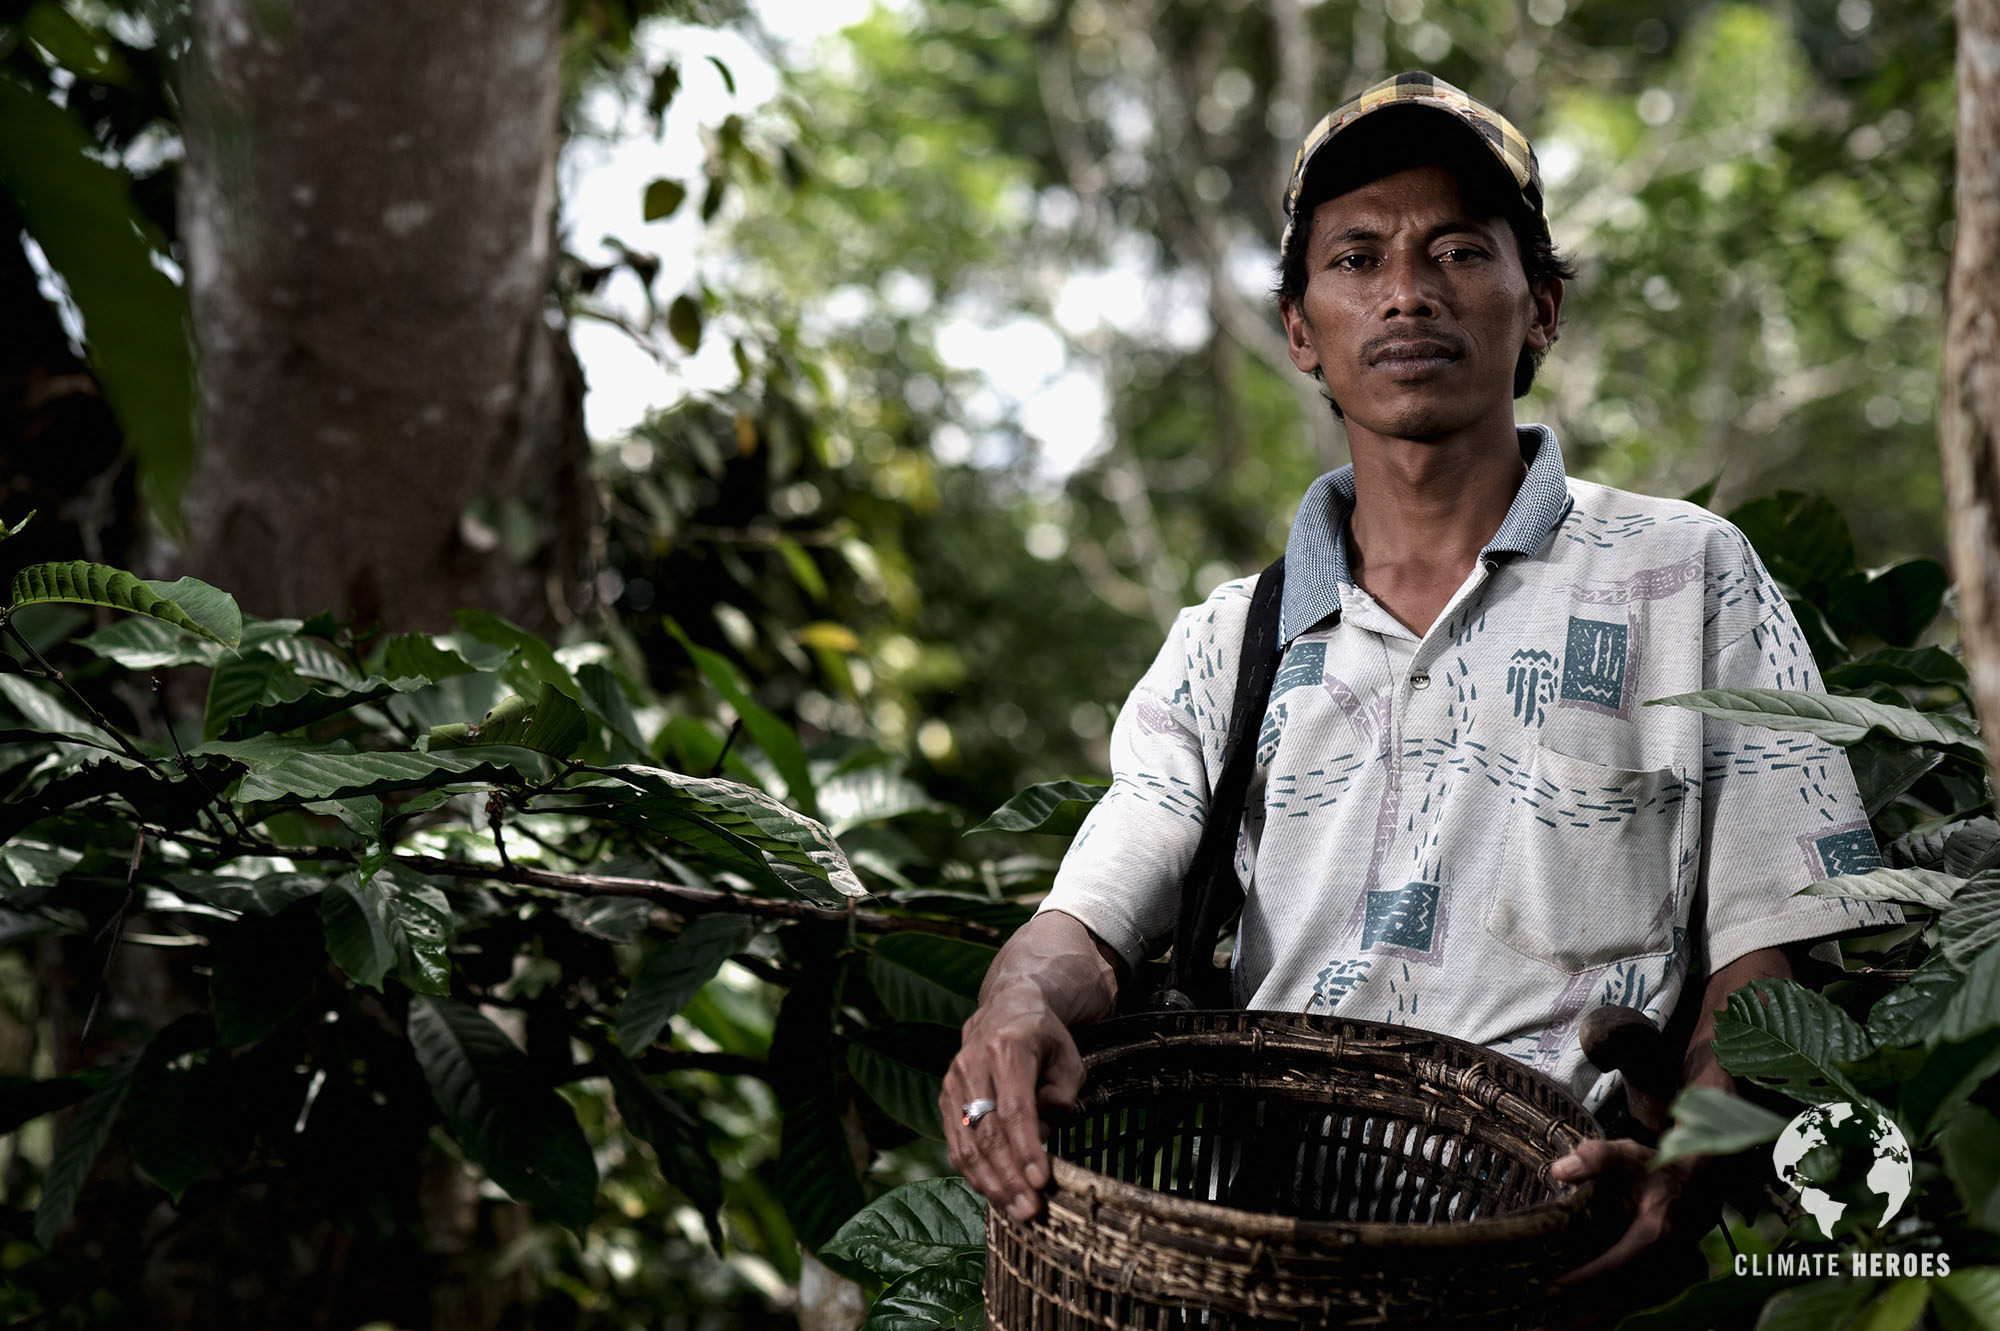 Climate Heroes project, Sumatra. Amir, 36 years old, owner of a fruit and coffee plantation